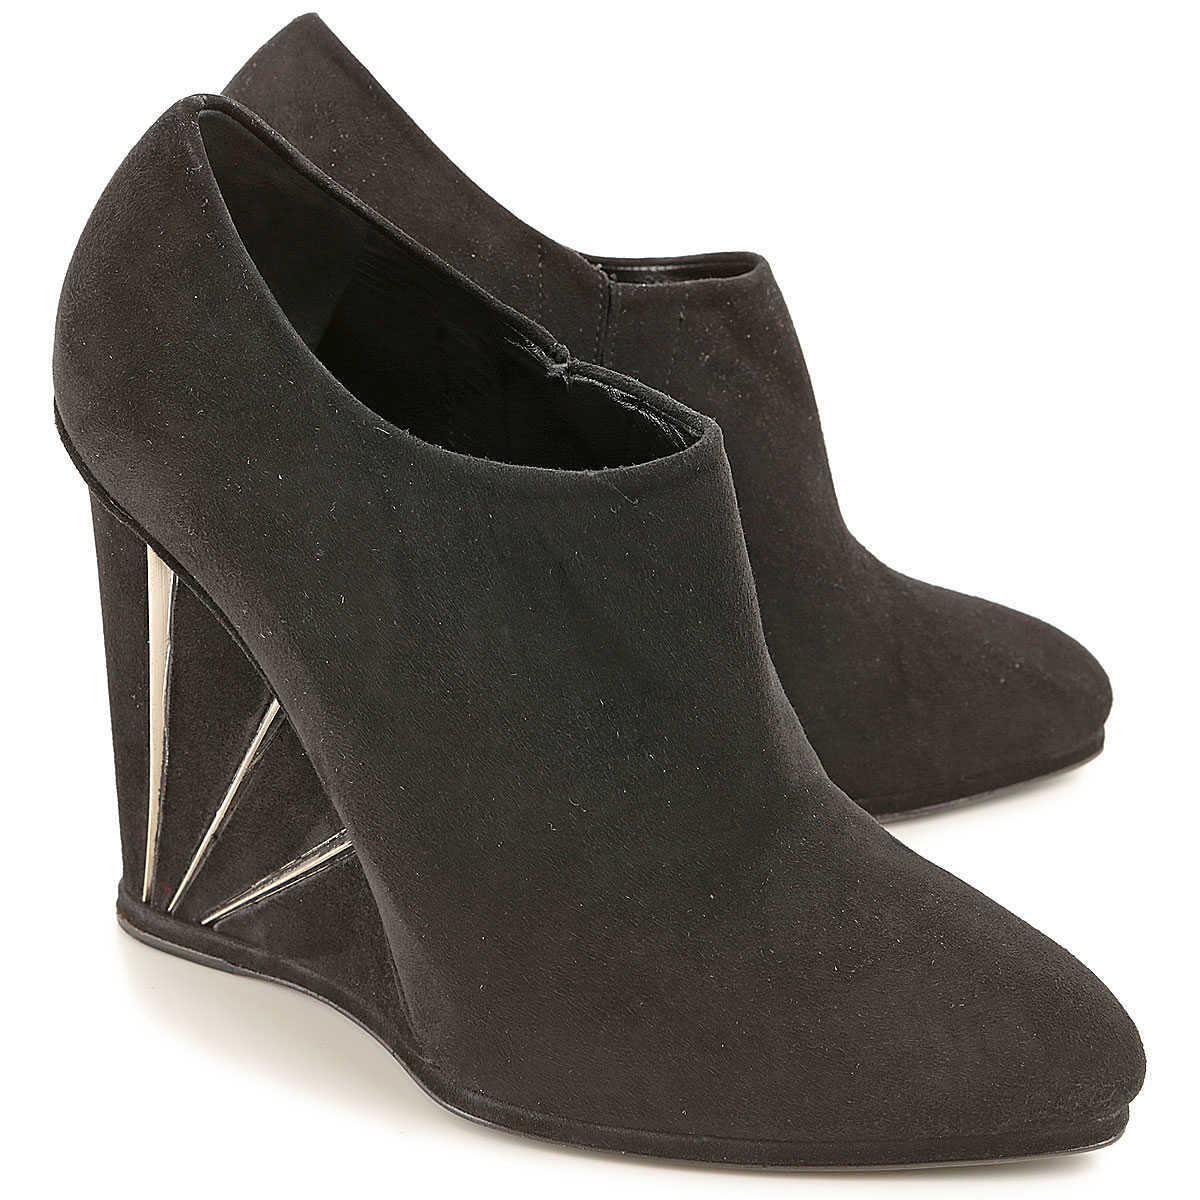 Stuart Weitzman Wedges for Women On Sale in Outlet Black - GOOFASH